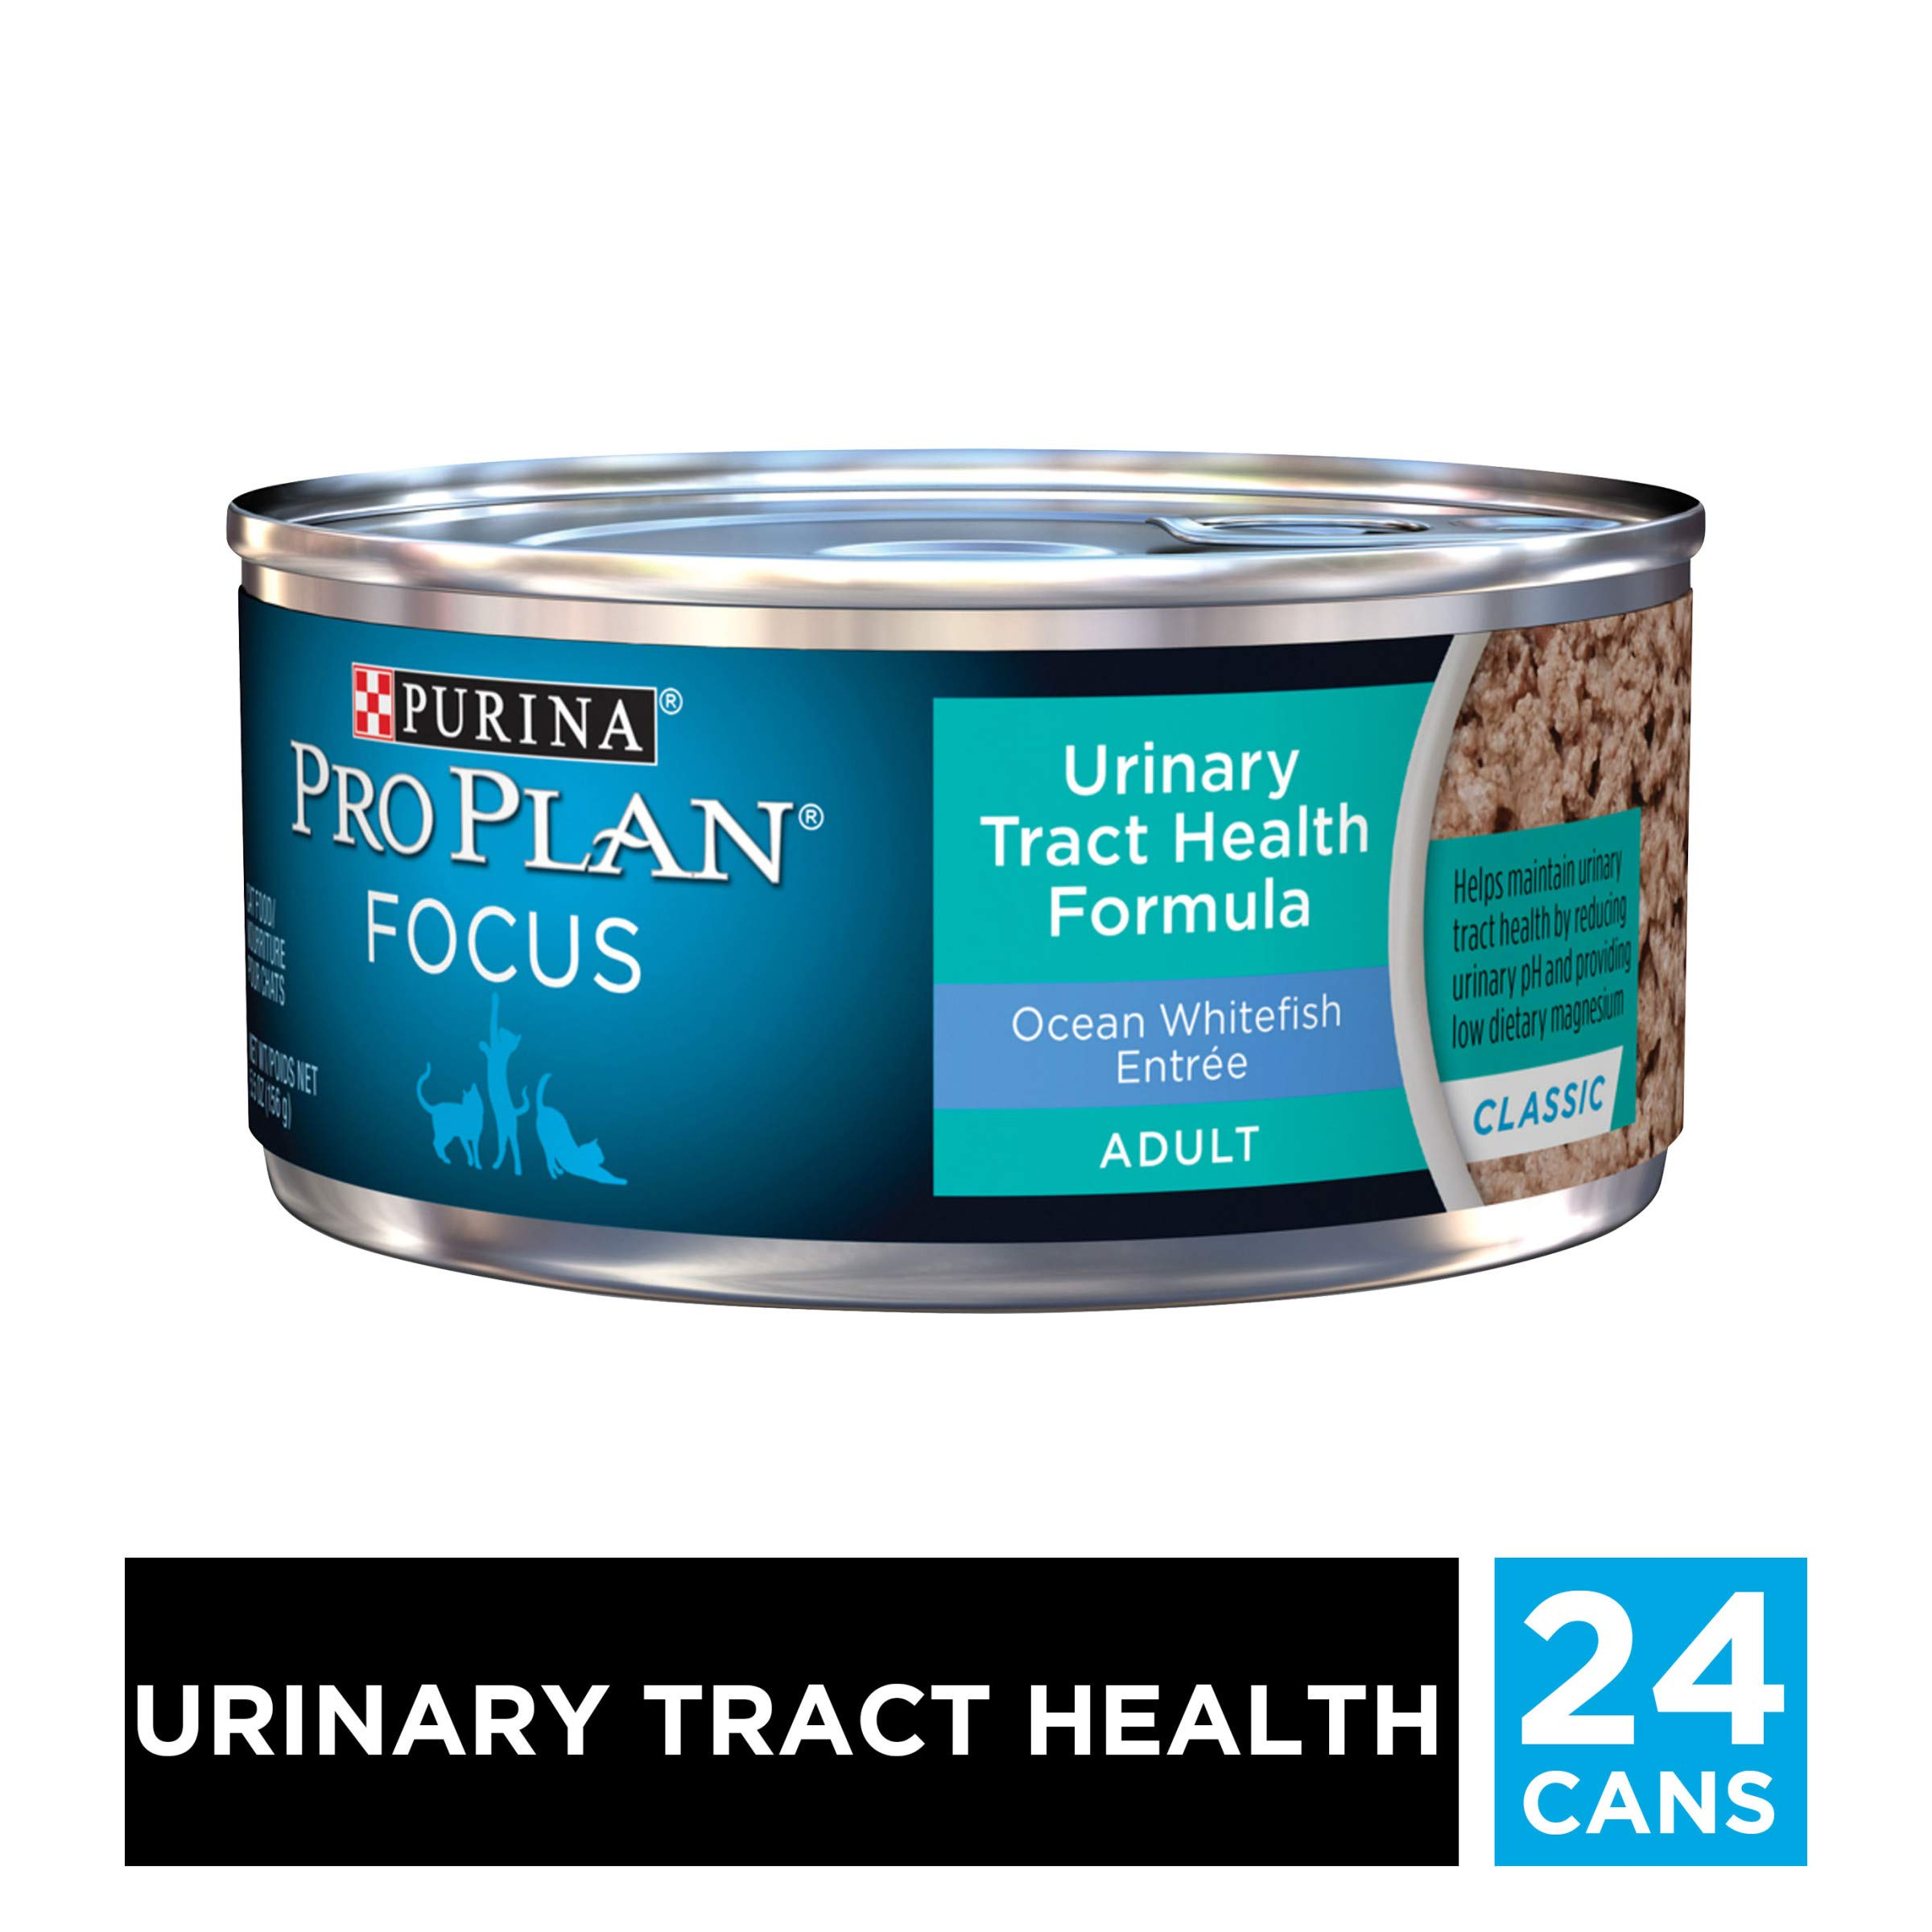 Purina Pro Plan Urinary Tract Health Pate Wet Cat Food, FOCUS Urinary Tract Health Formula Ocean Whitefish Entree - (24) 5.5 oz. Cans by PURINA Pro Plan